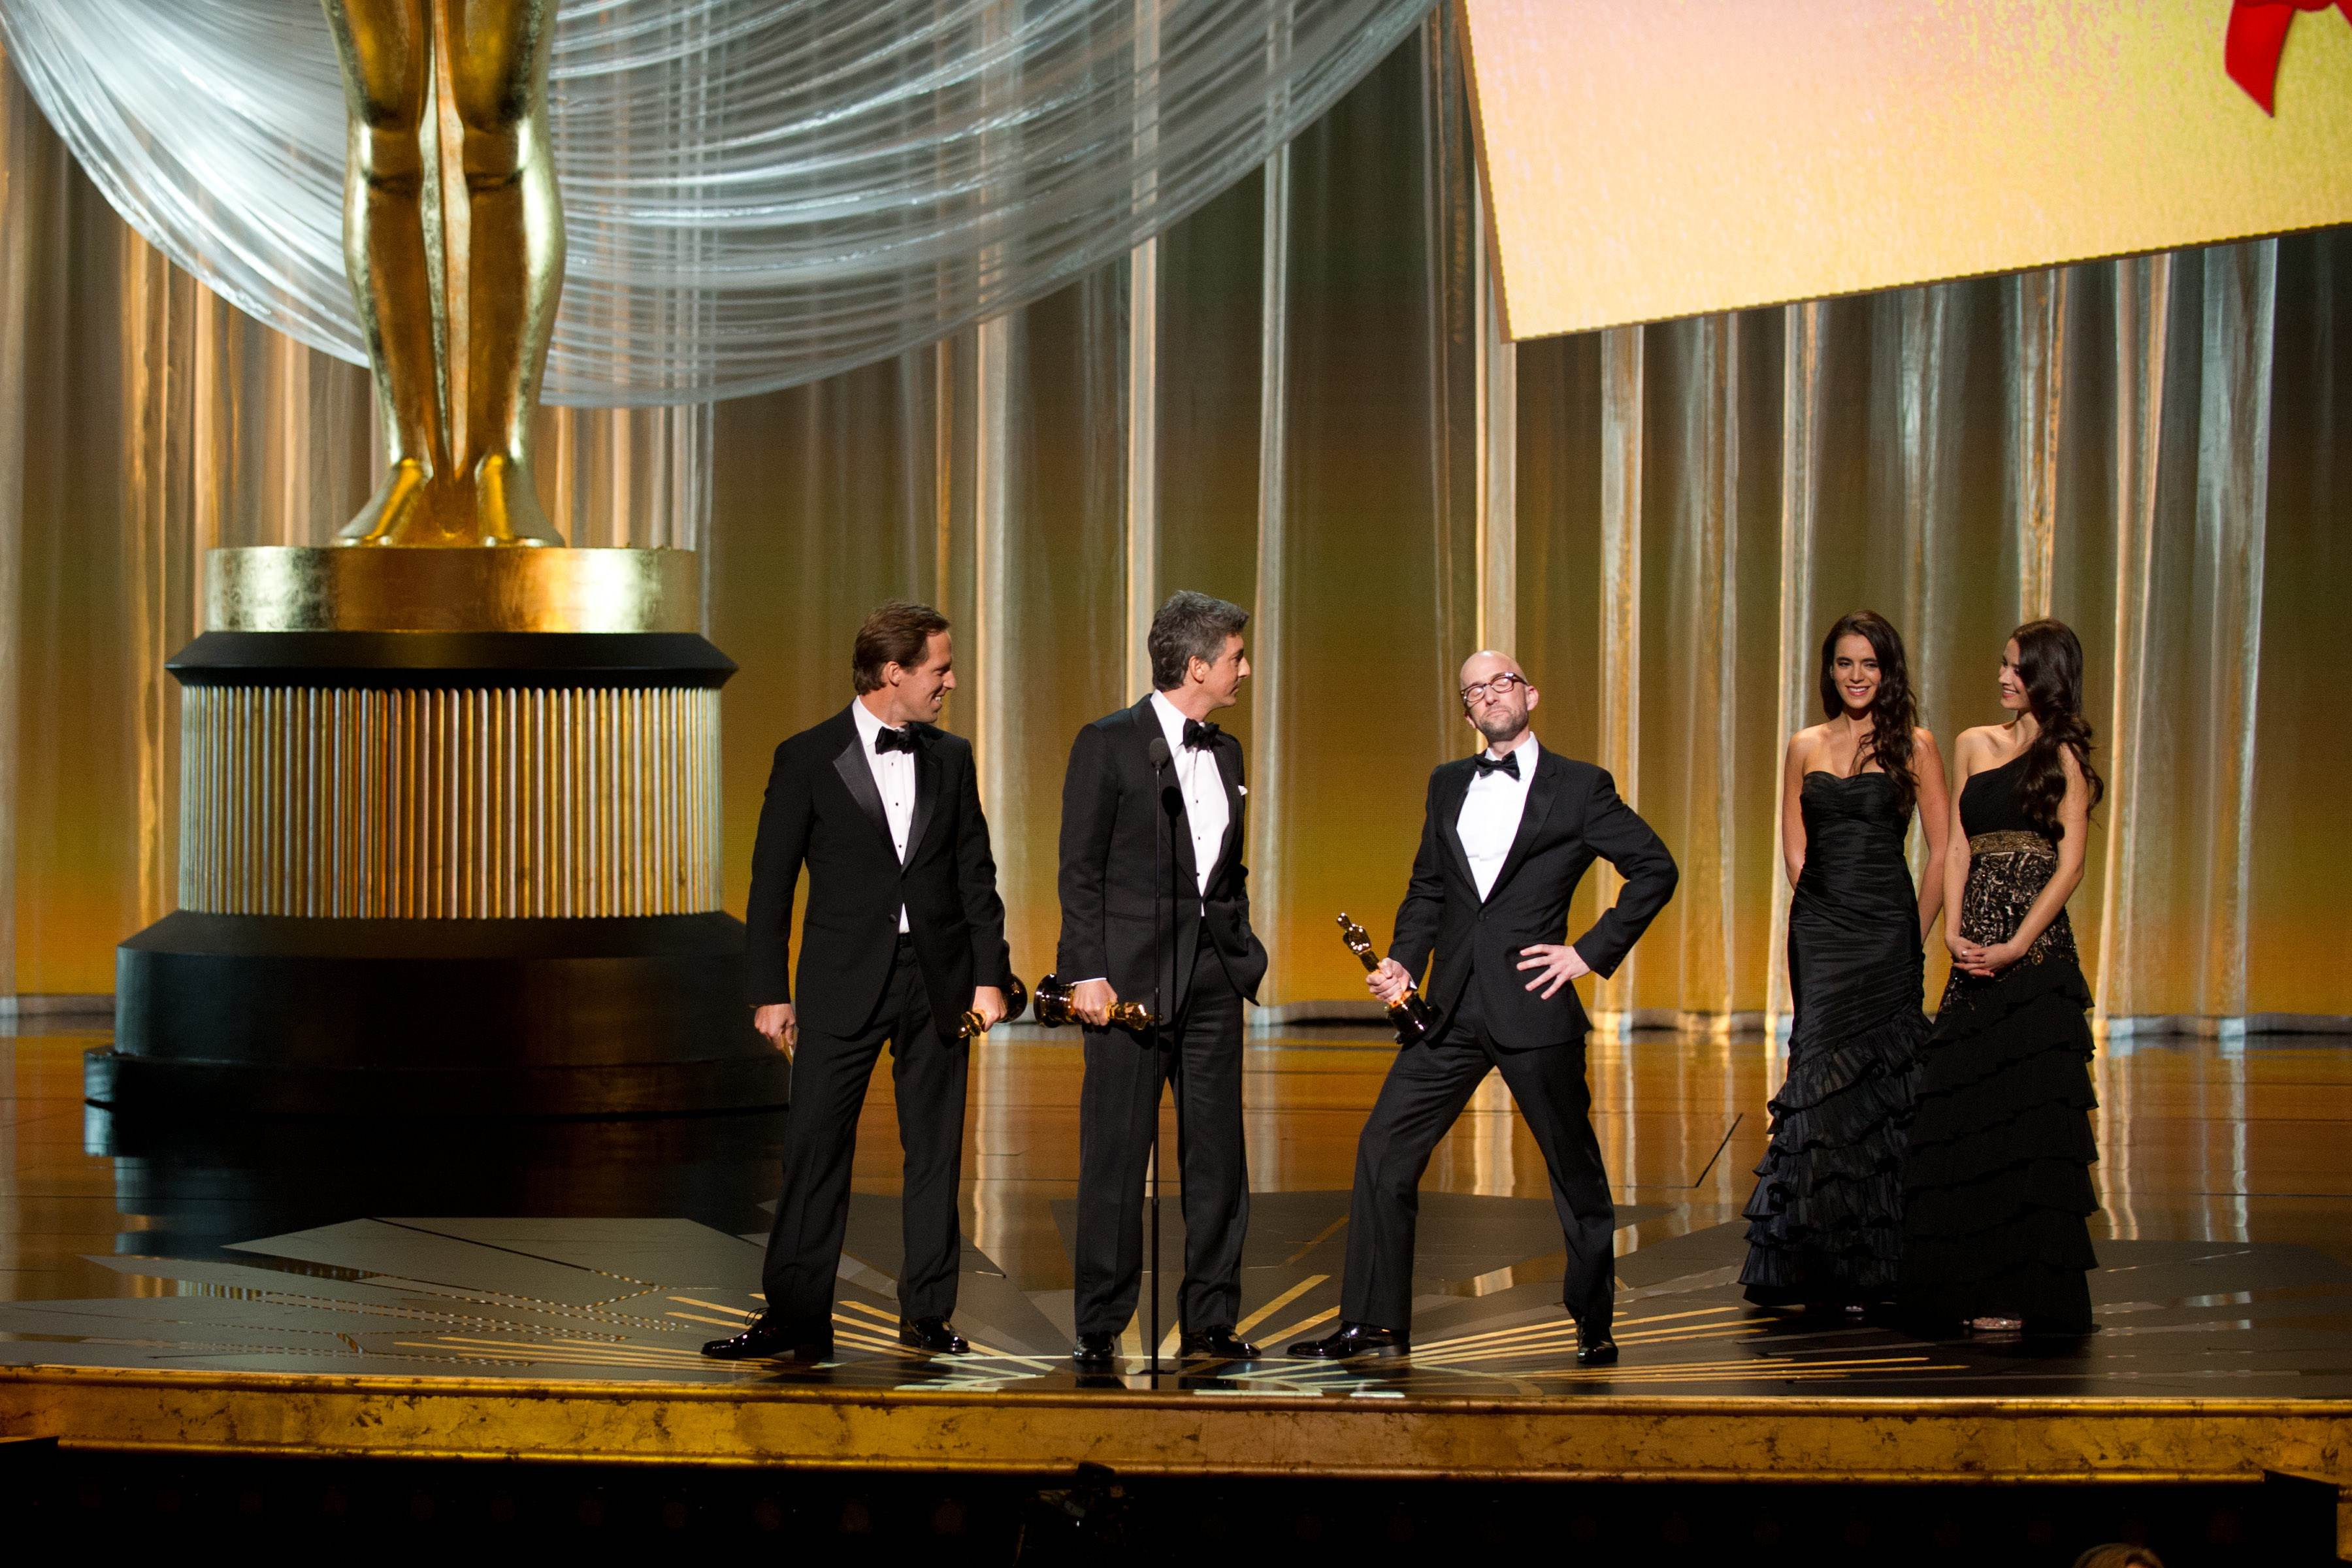 """Alexander Payne, Nat Faxon and Jim Rash accept the Oscar® for Adapted Screenplay for work on """"The Descendants,"""" while Jim Rash takes the opportunity to imitate Angelina Jolie's """"leg pose."""""""